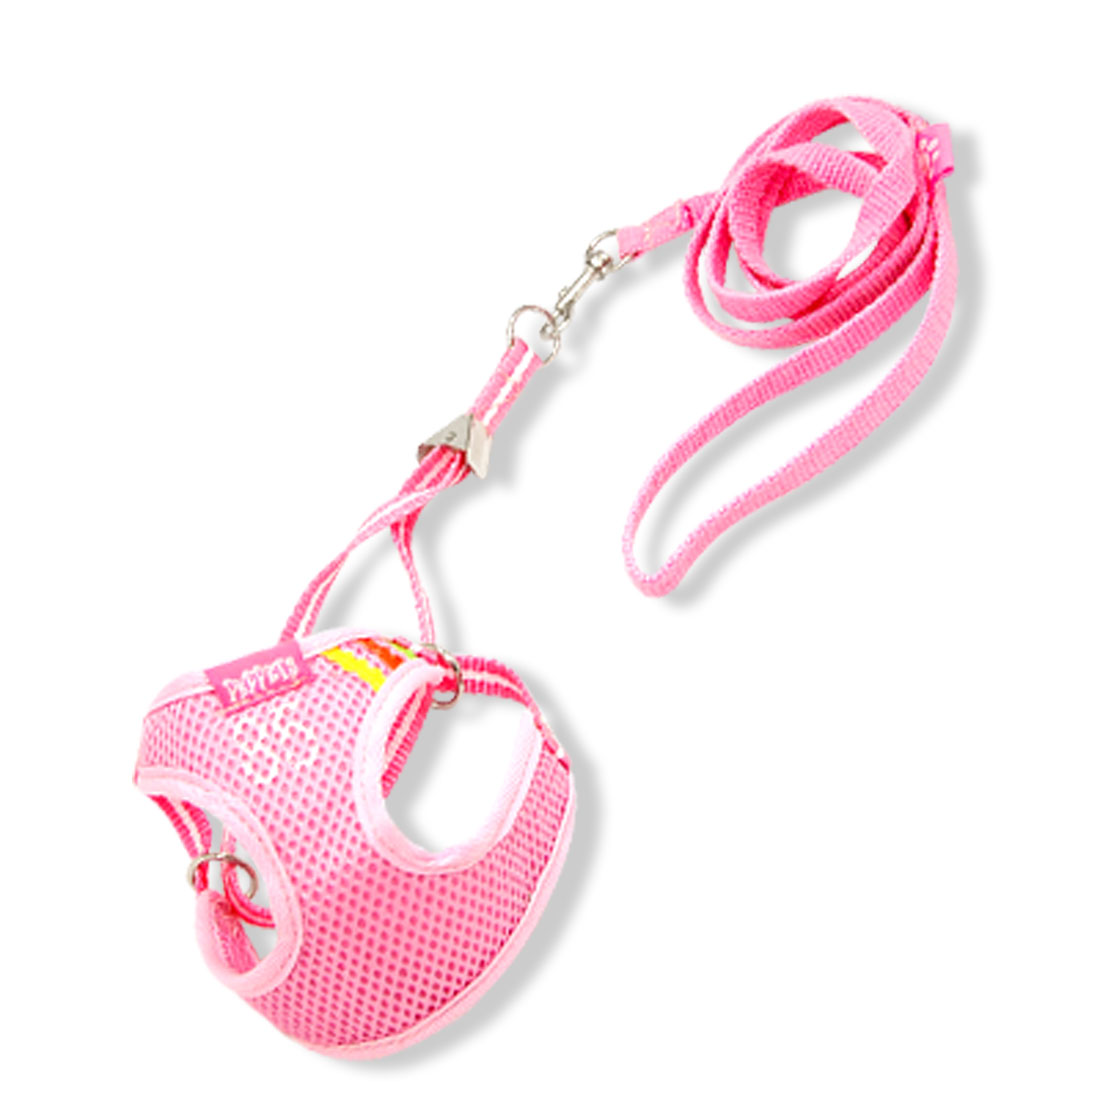 Doggie's Pink Vest Style Harness Leash Strap Size 3